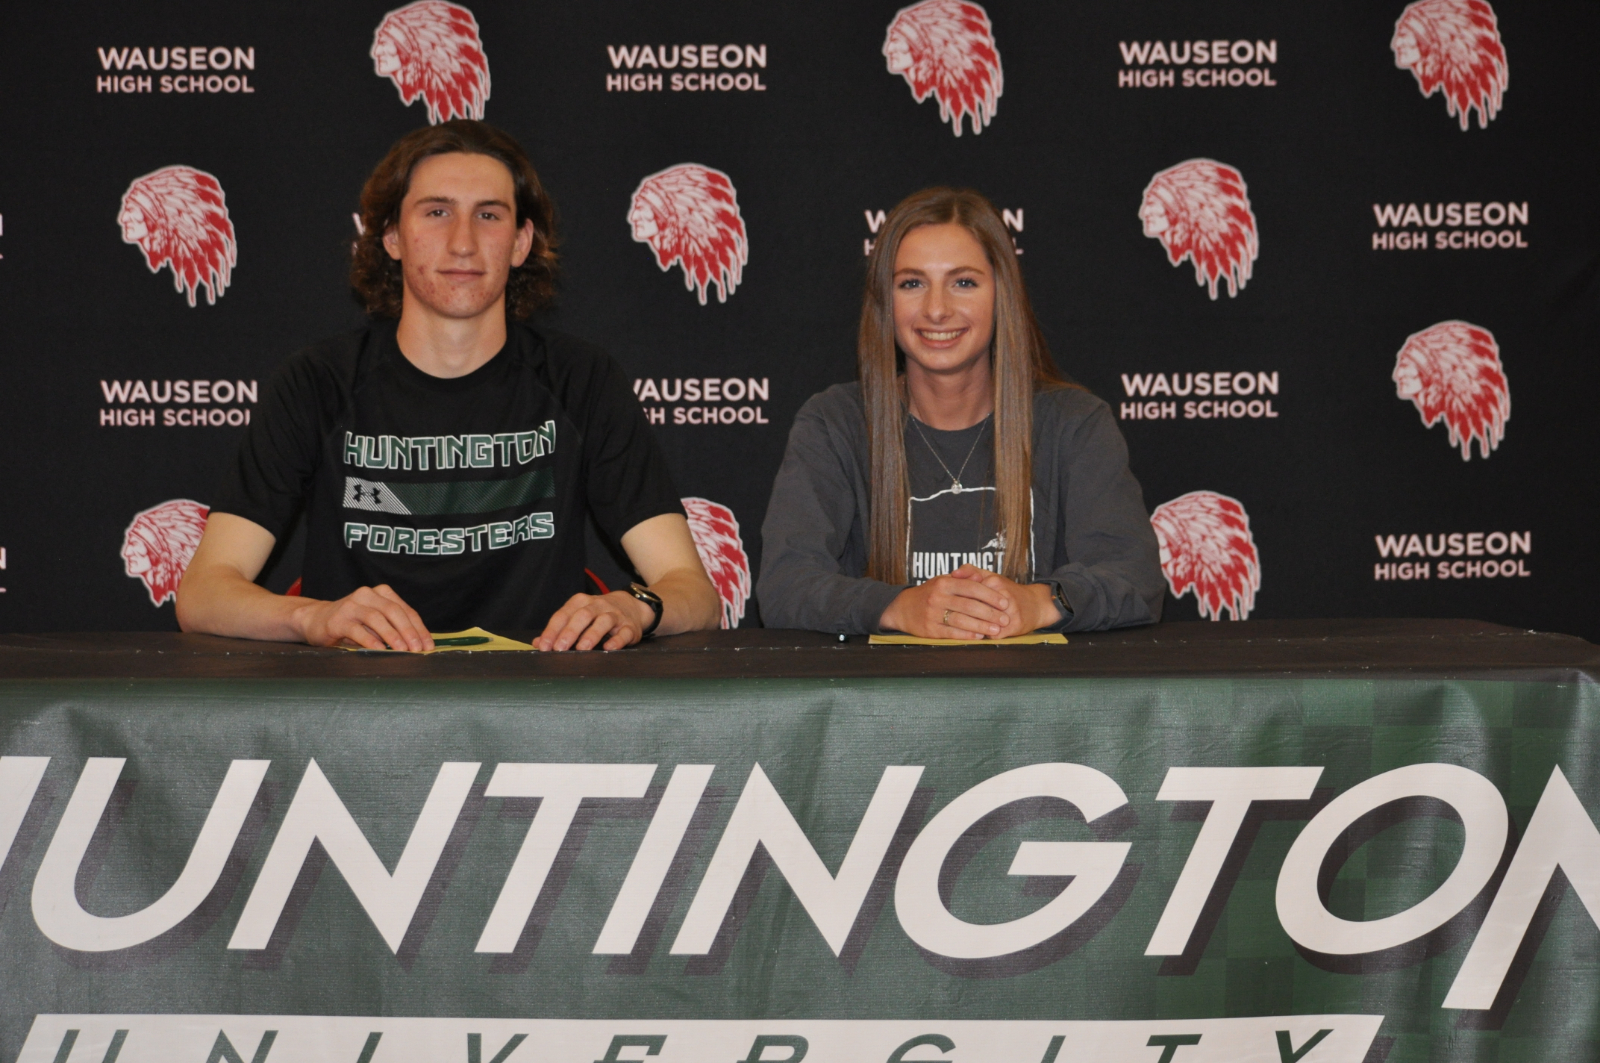 Cheezan and Richer sign with Huntington